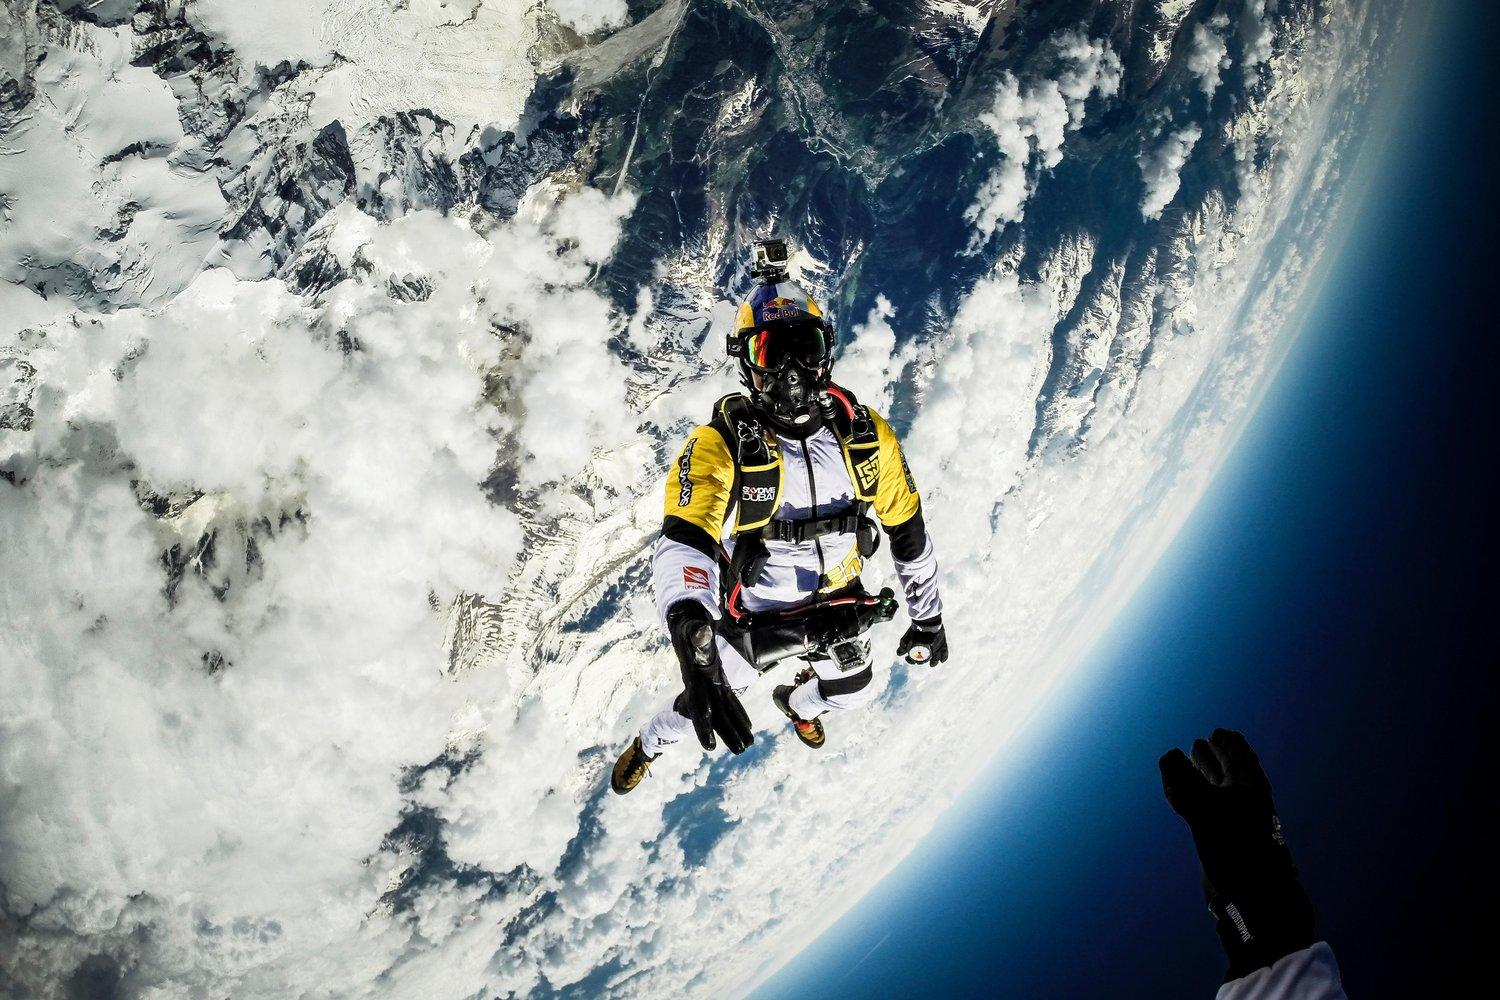 10,000m Mont Blanc skydive *video*